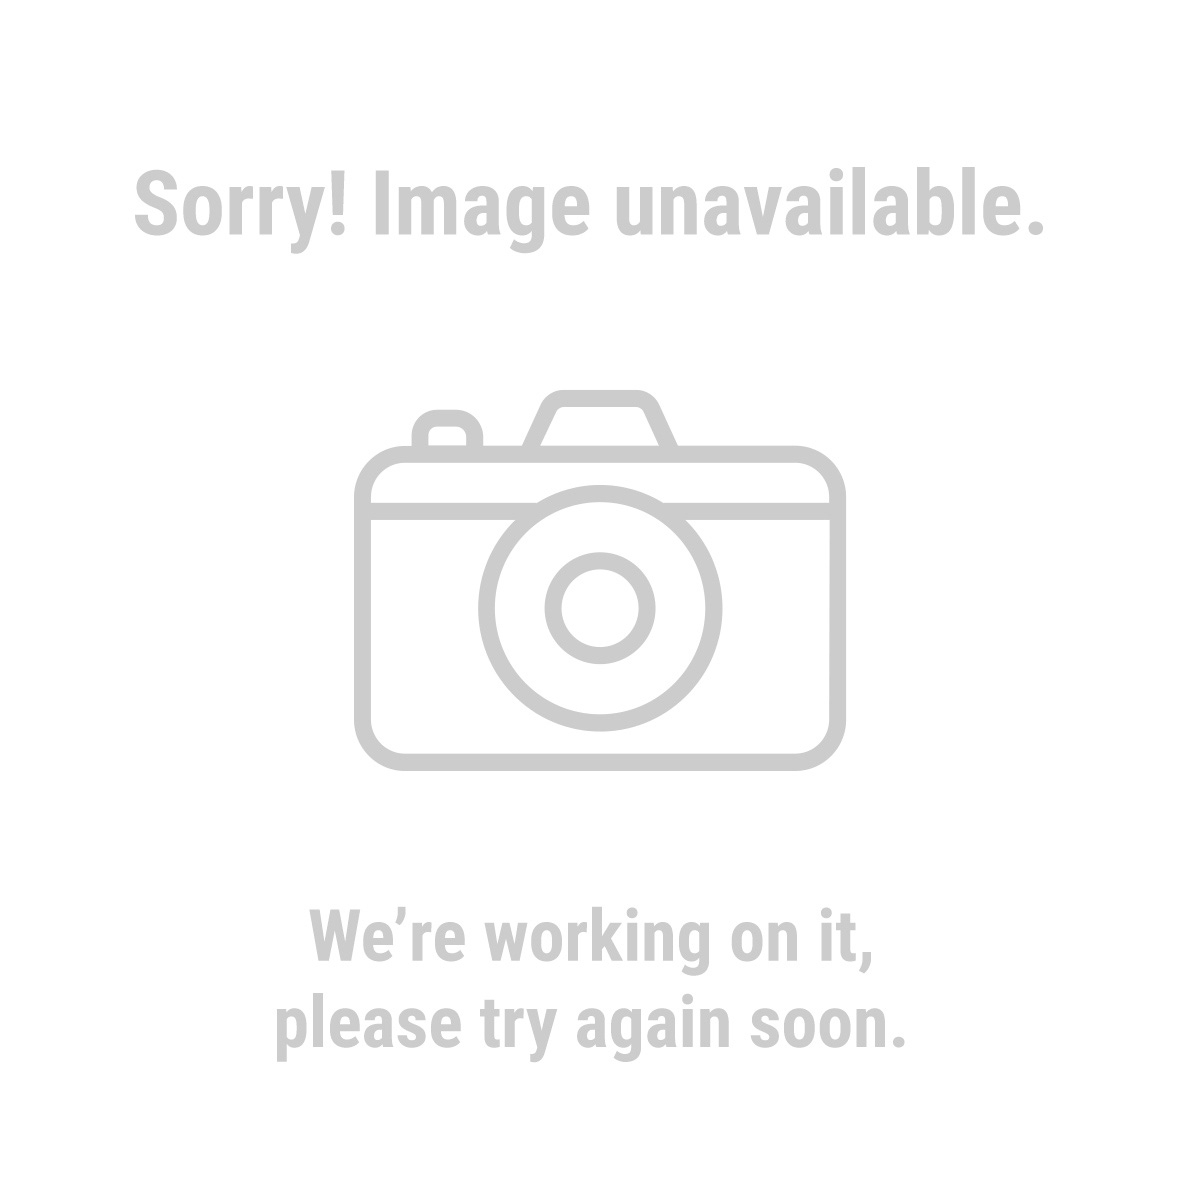 Electric Power Detector : Function metal detector